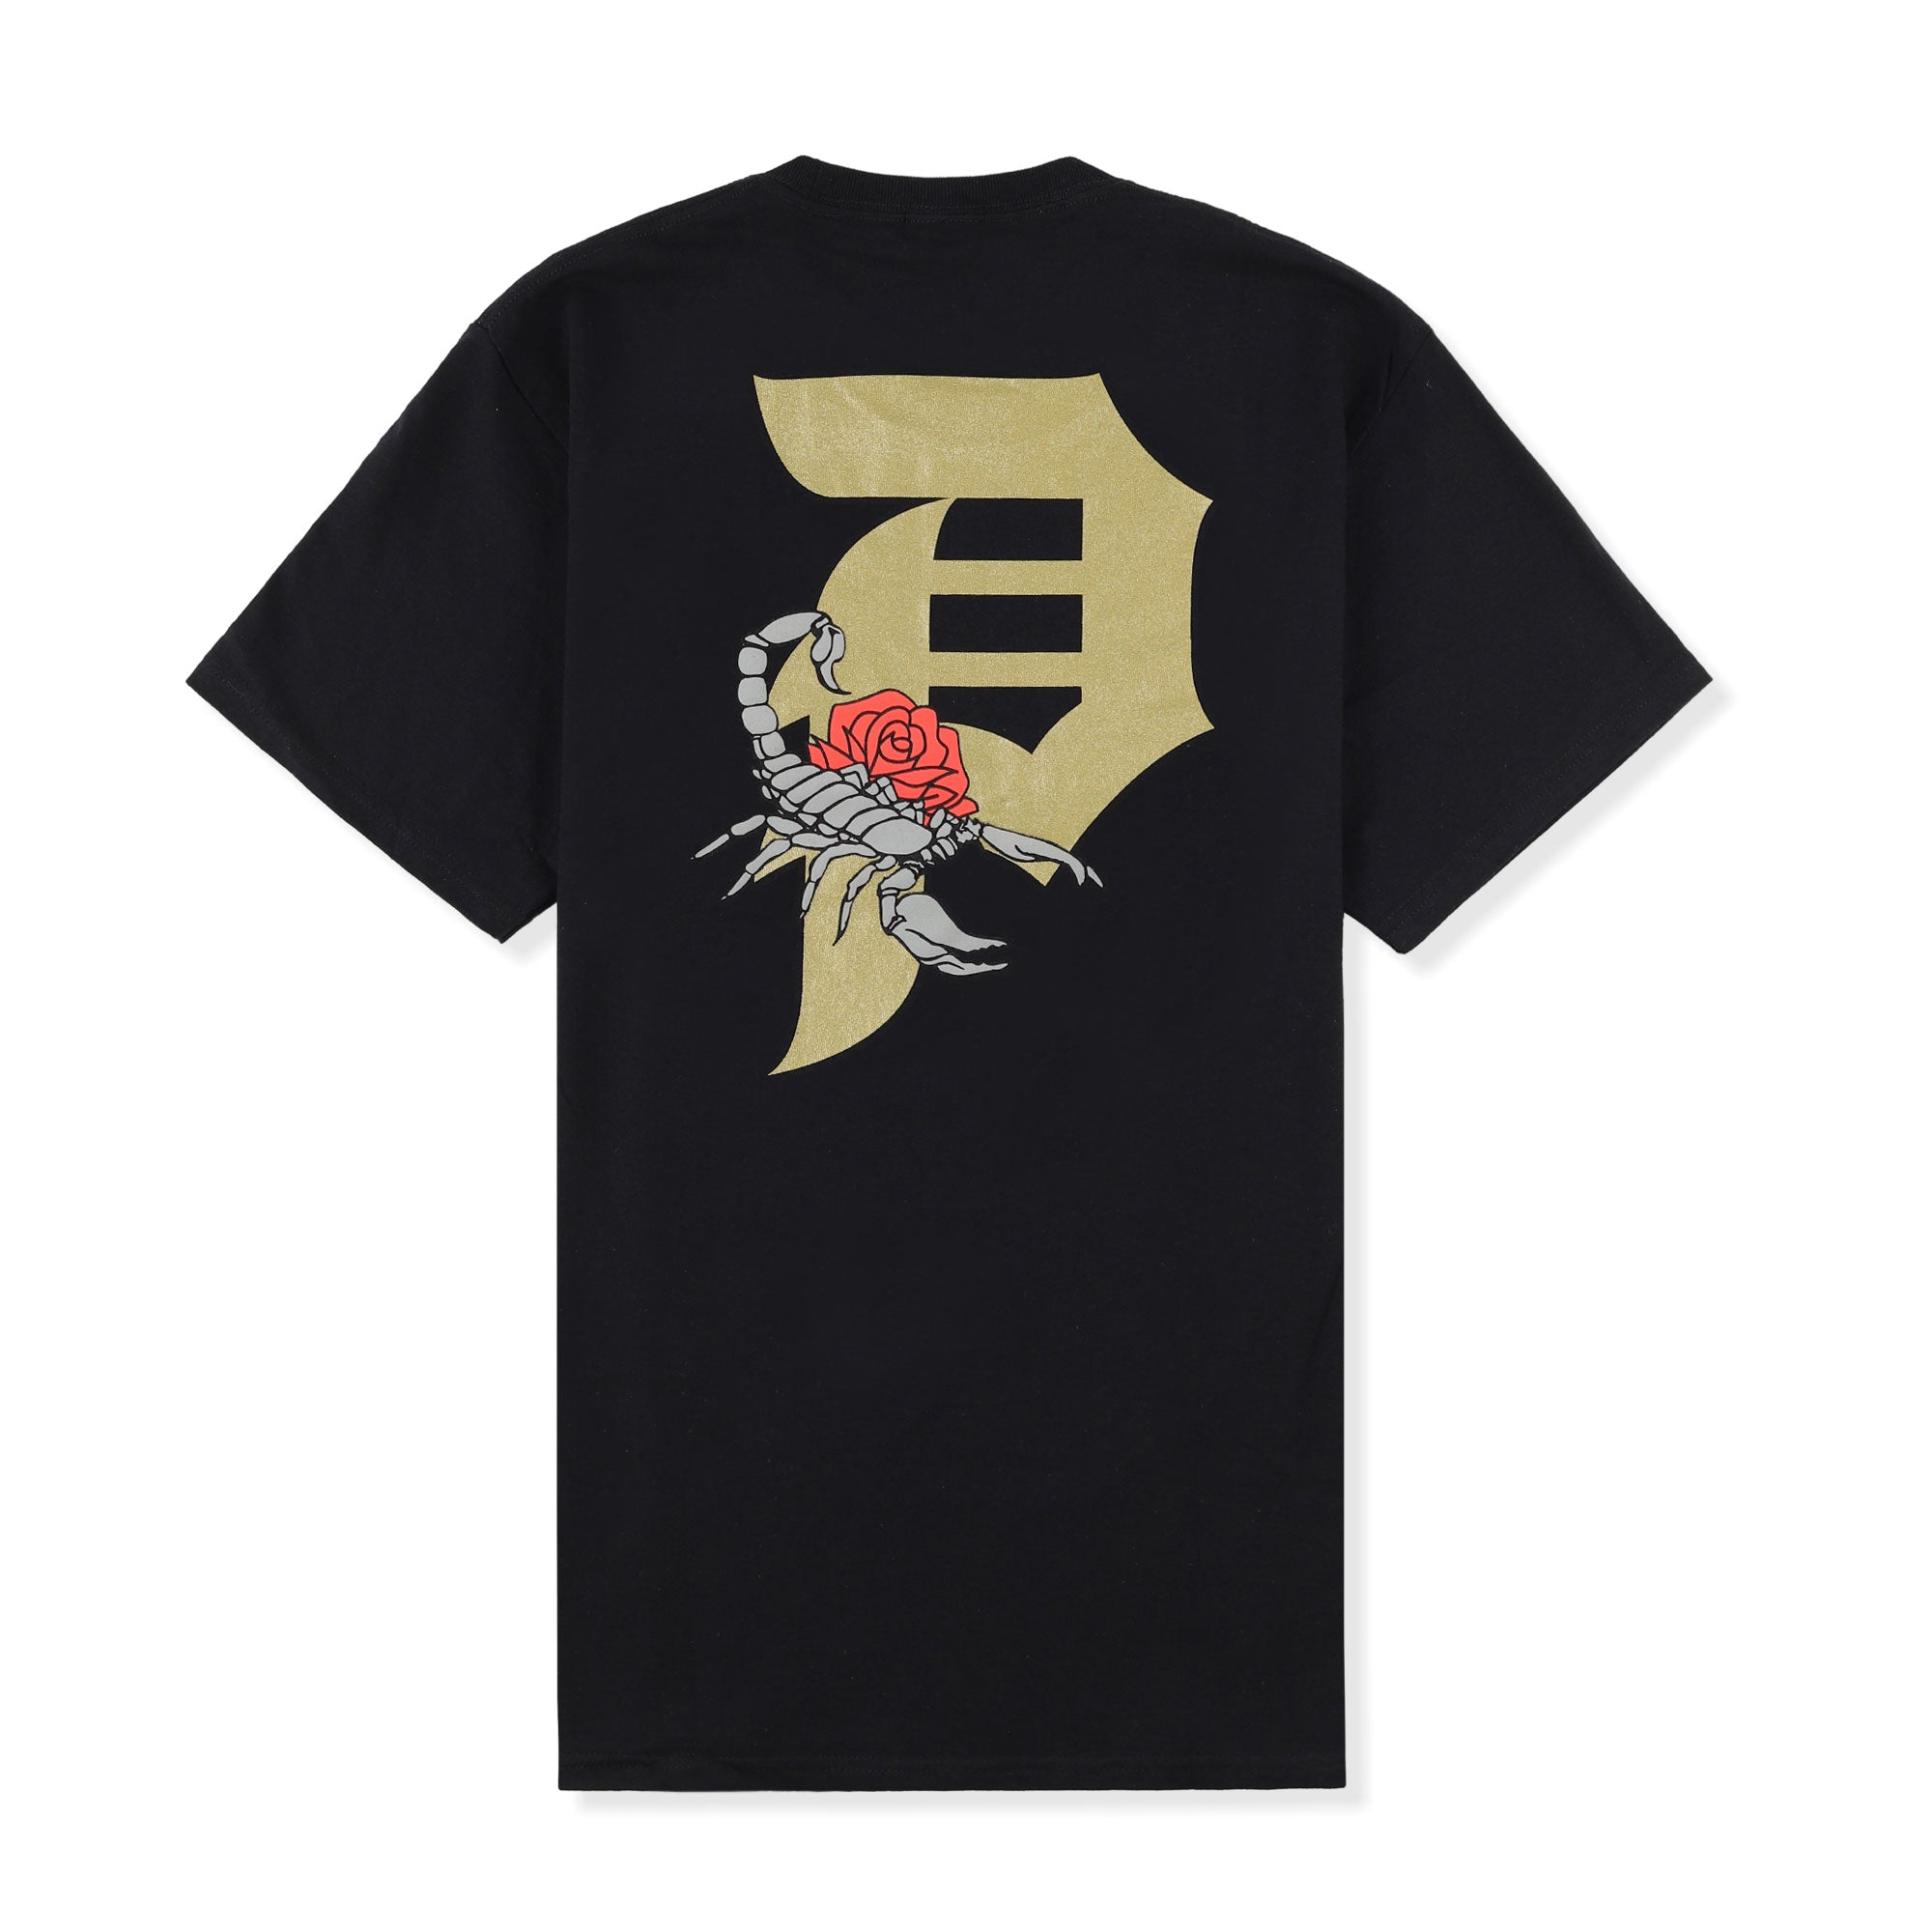 Primitive Dirty P Scorpion Tee Product Photo #1